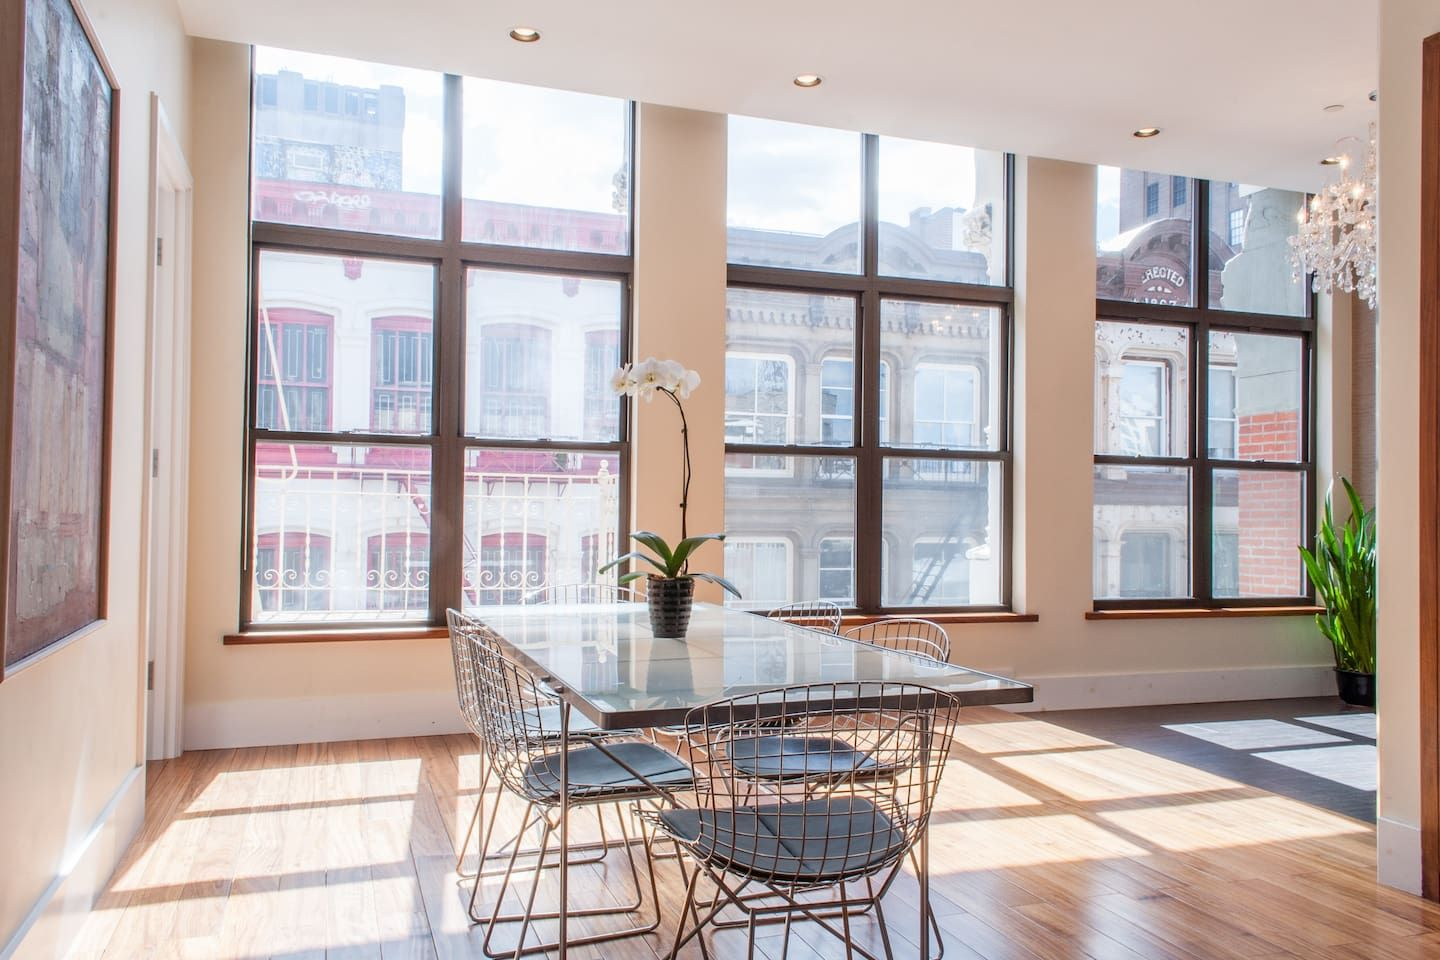 Tribeca 2500 Sq Ft W Priv Elevator Lofts For Rent In New York